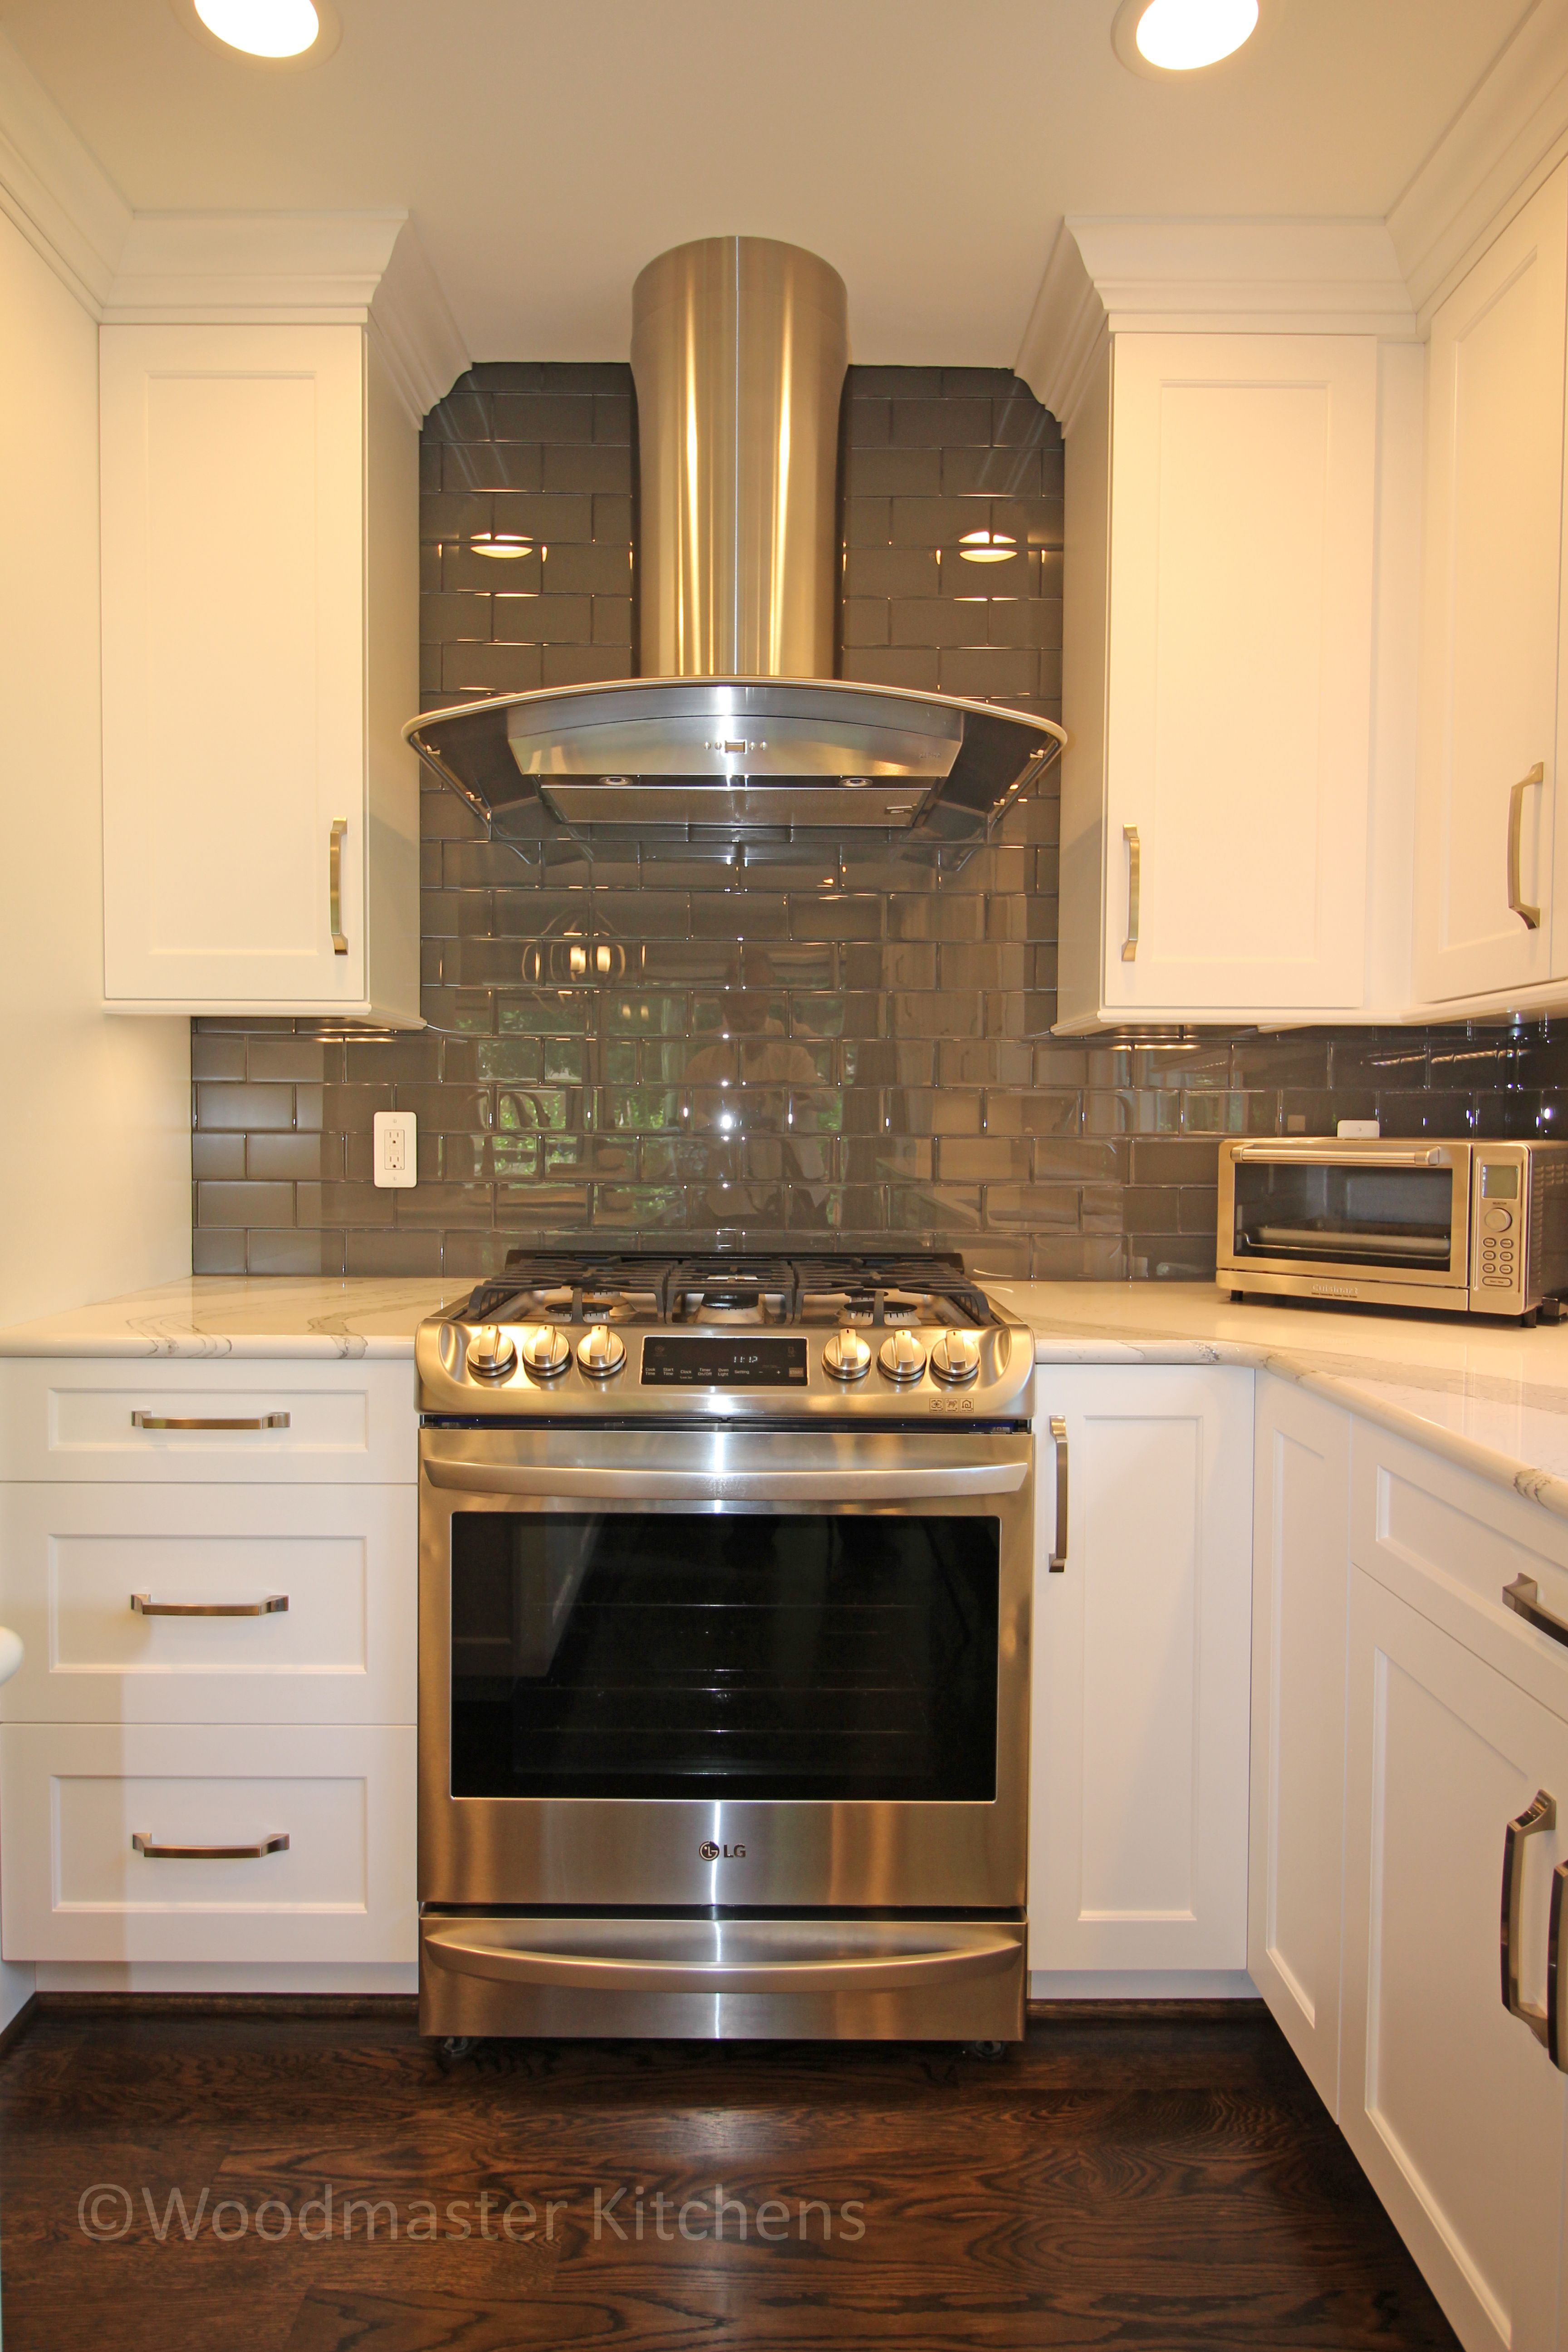 This Home Remodeling Project Included A Kitchen Remodel Plus A New Front Door And Foyer Upgrade The Kitchen Design Inc Kitchen Design Kitchen Remodel Kitchen